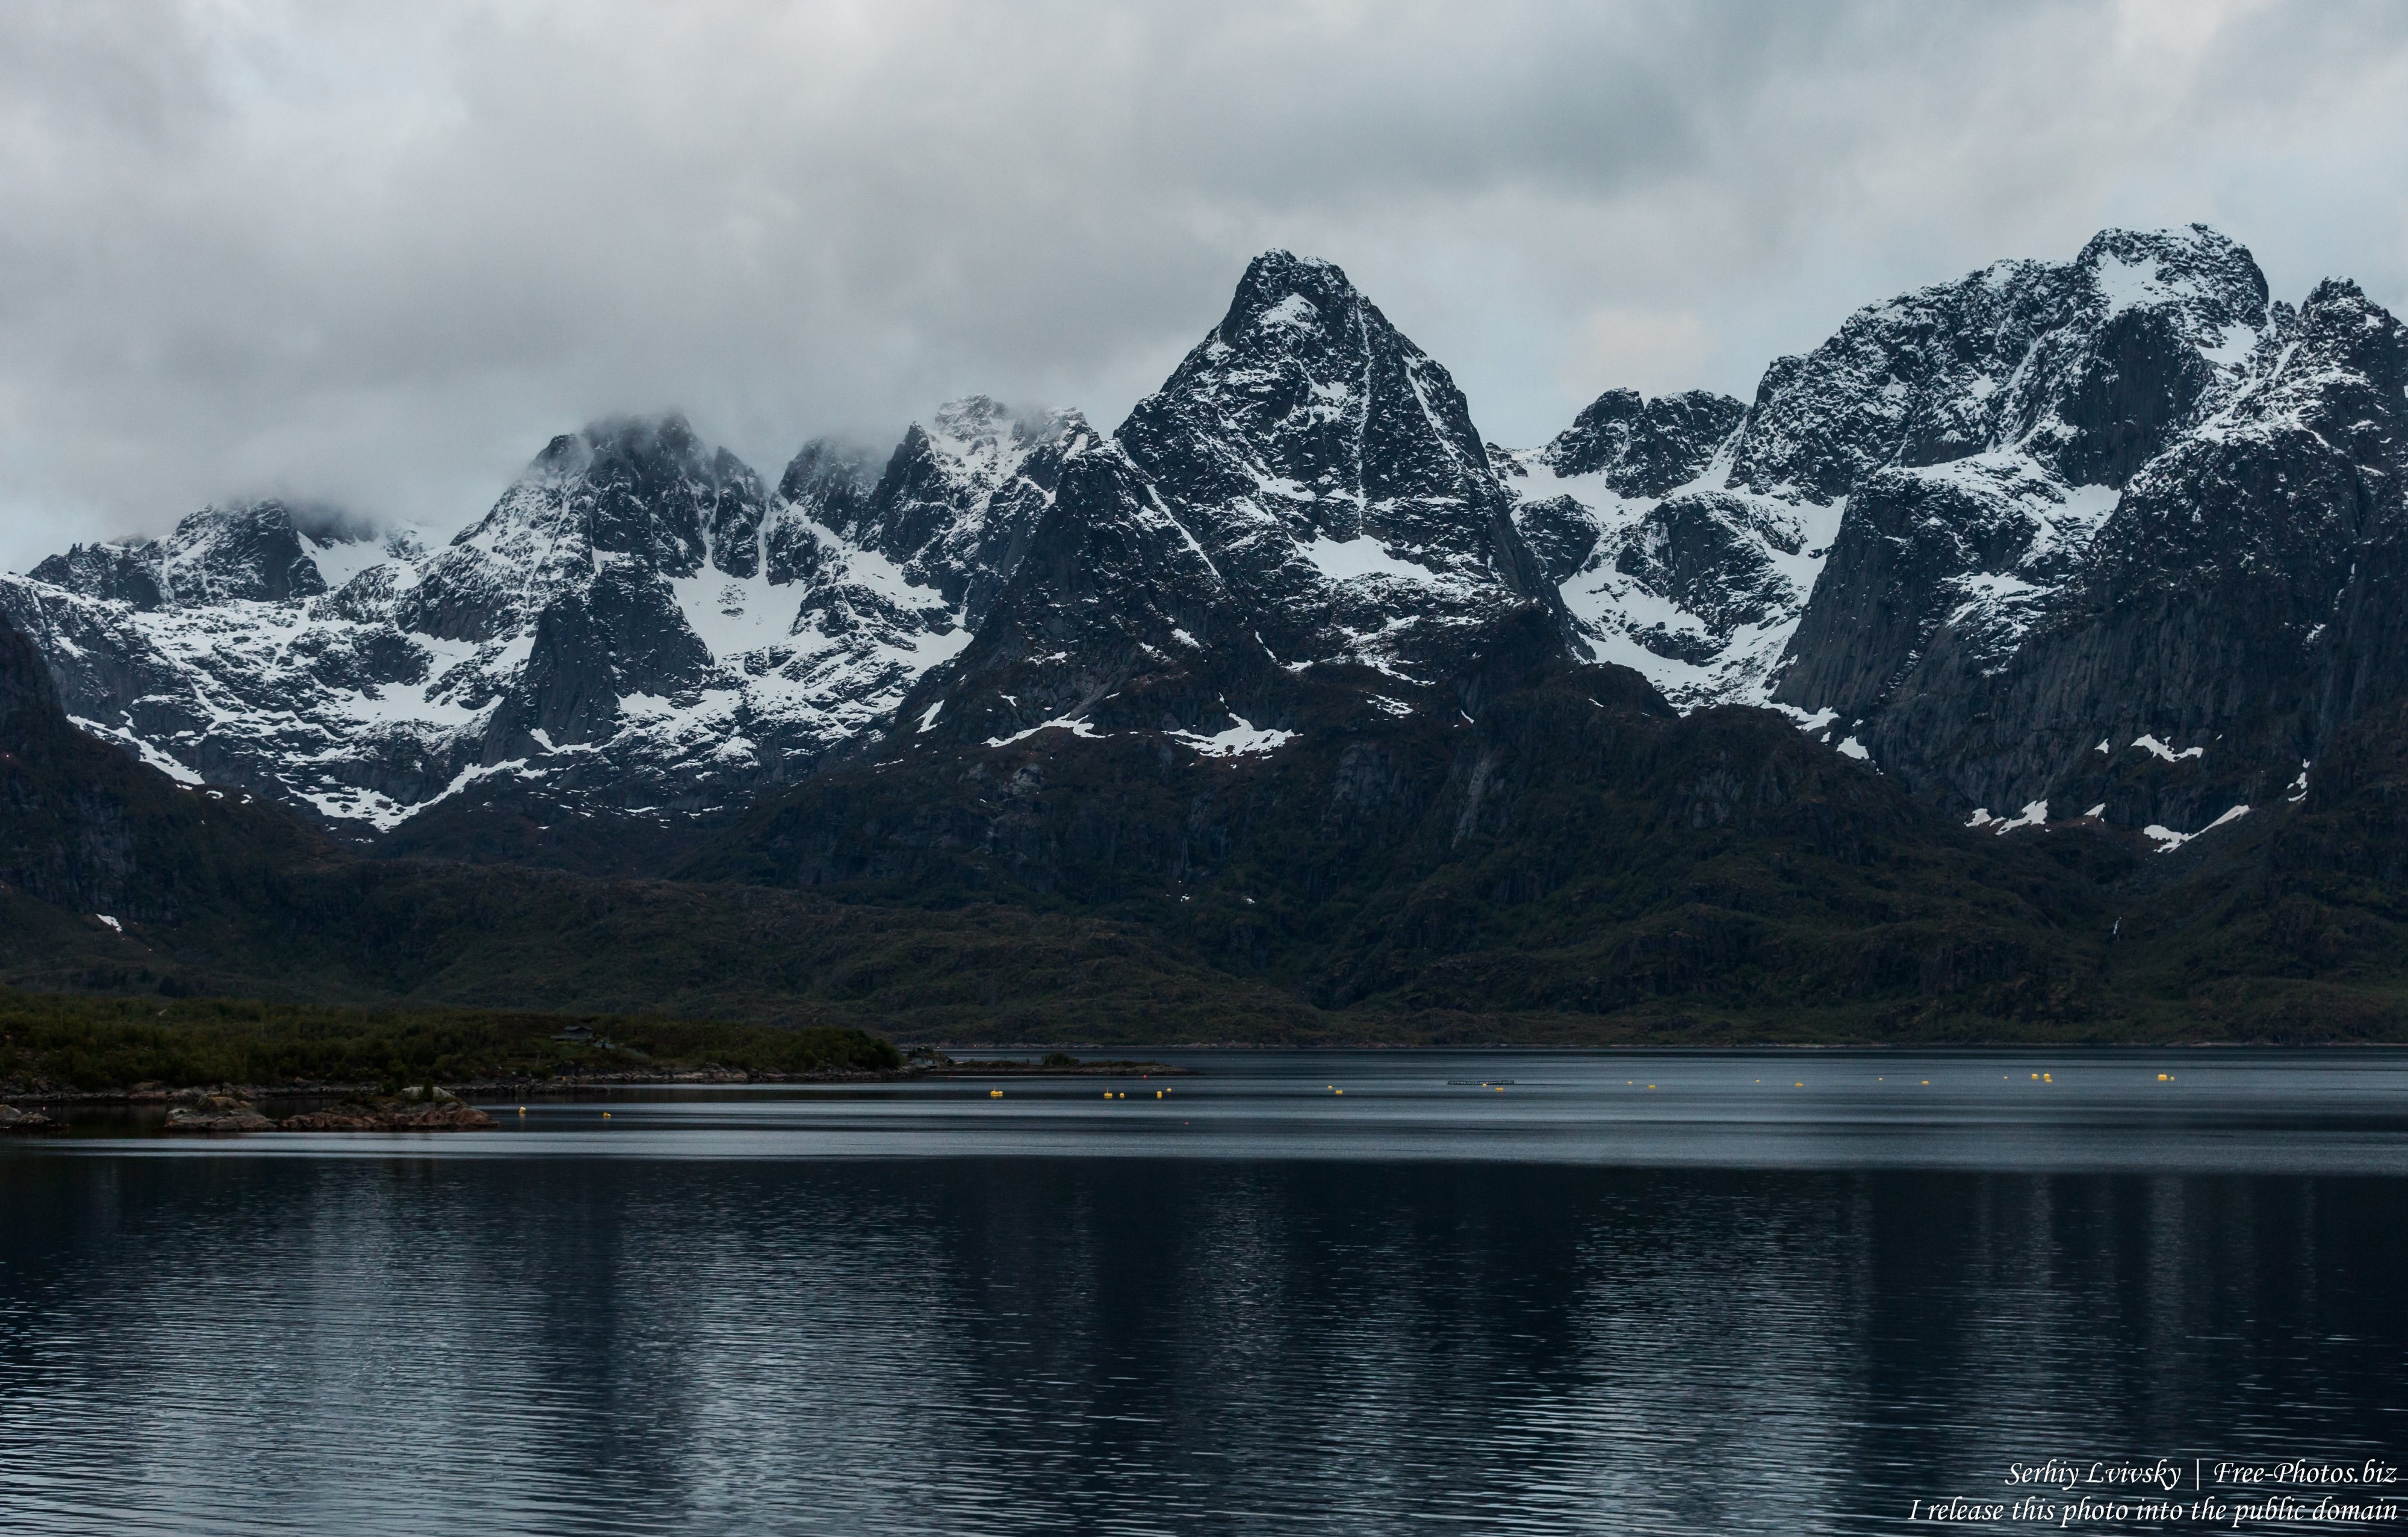 way_from_svolvaer_to_trollfjord_norway_photographed_in_june_2018_by_serhiy_lvivsky_11